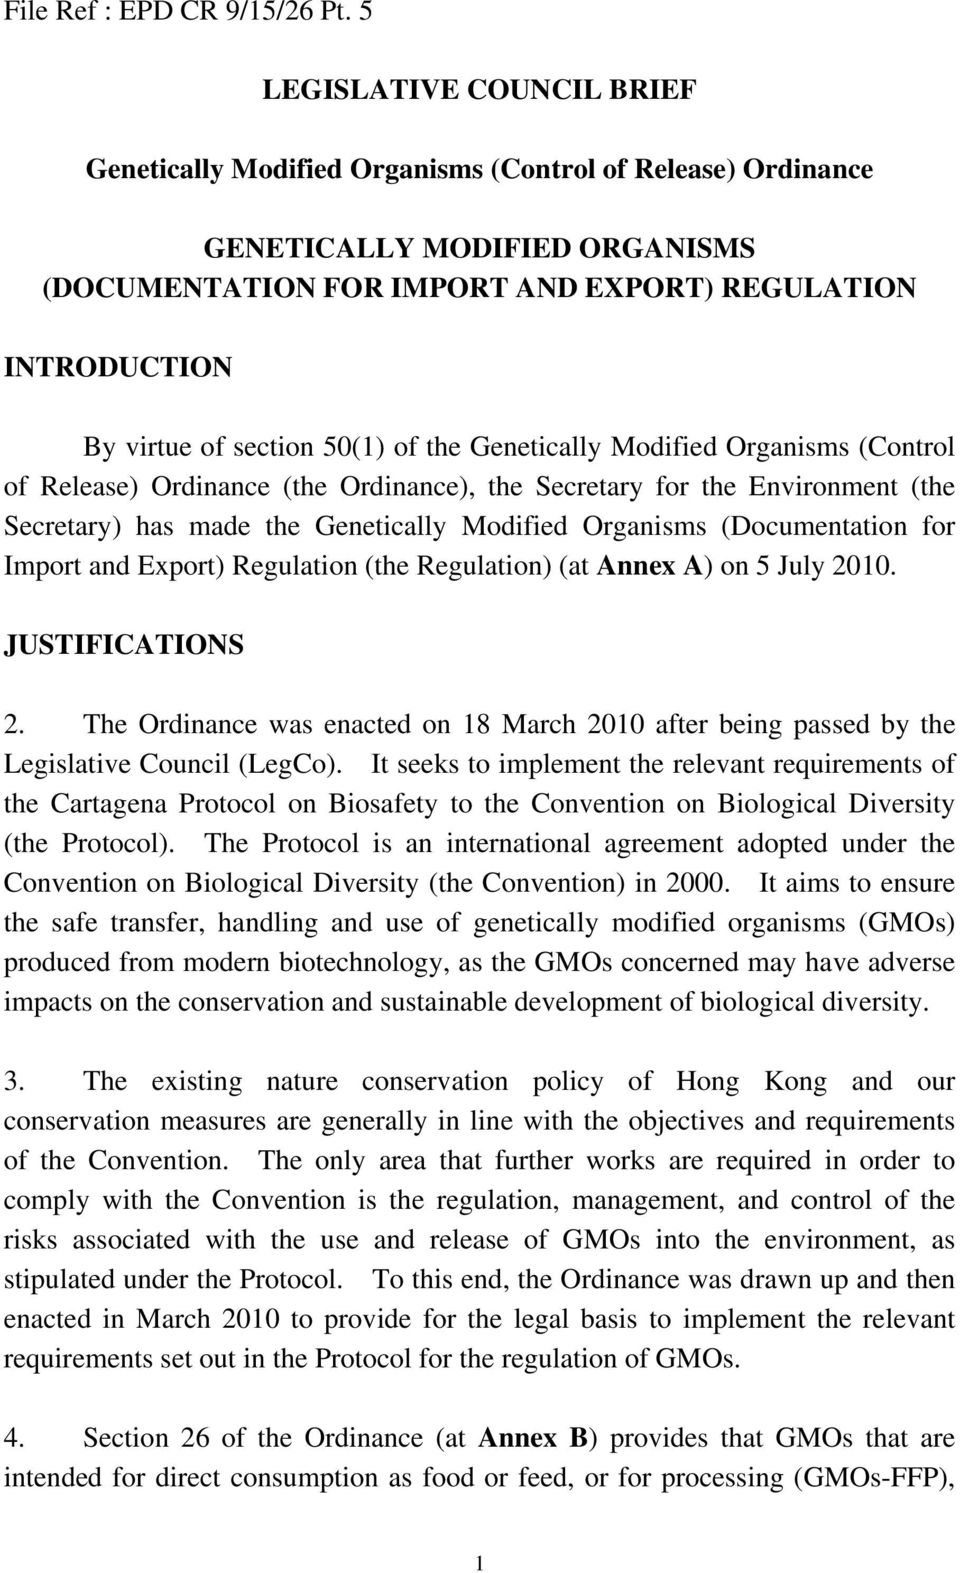 section 50(1) of the Genetically Modified Organisms (Control of Release) Ordinance (the Ordinance), the Secretary for the Environment (the Secretary) has made the Genetically Modified Organisms